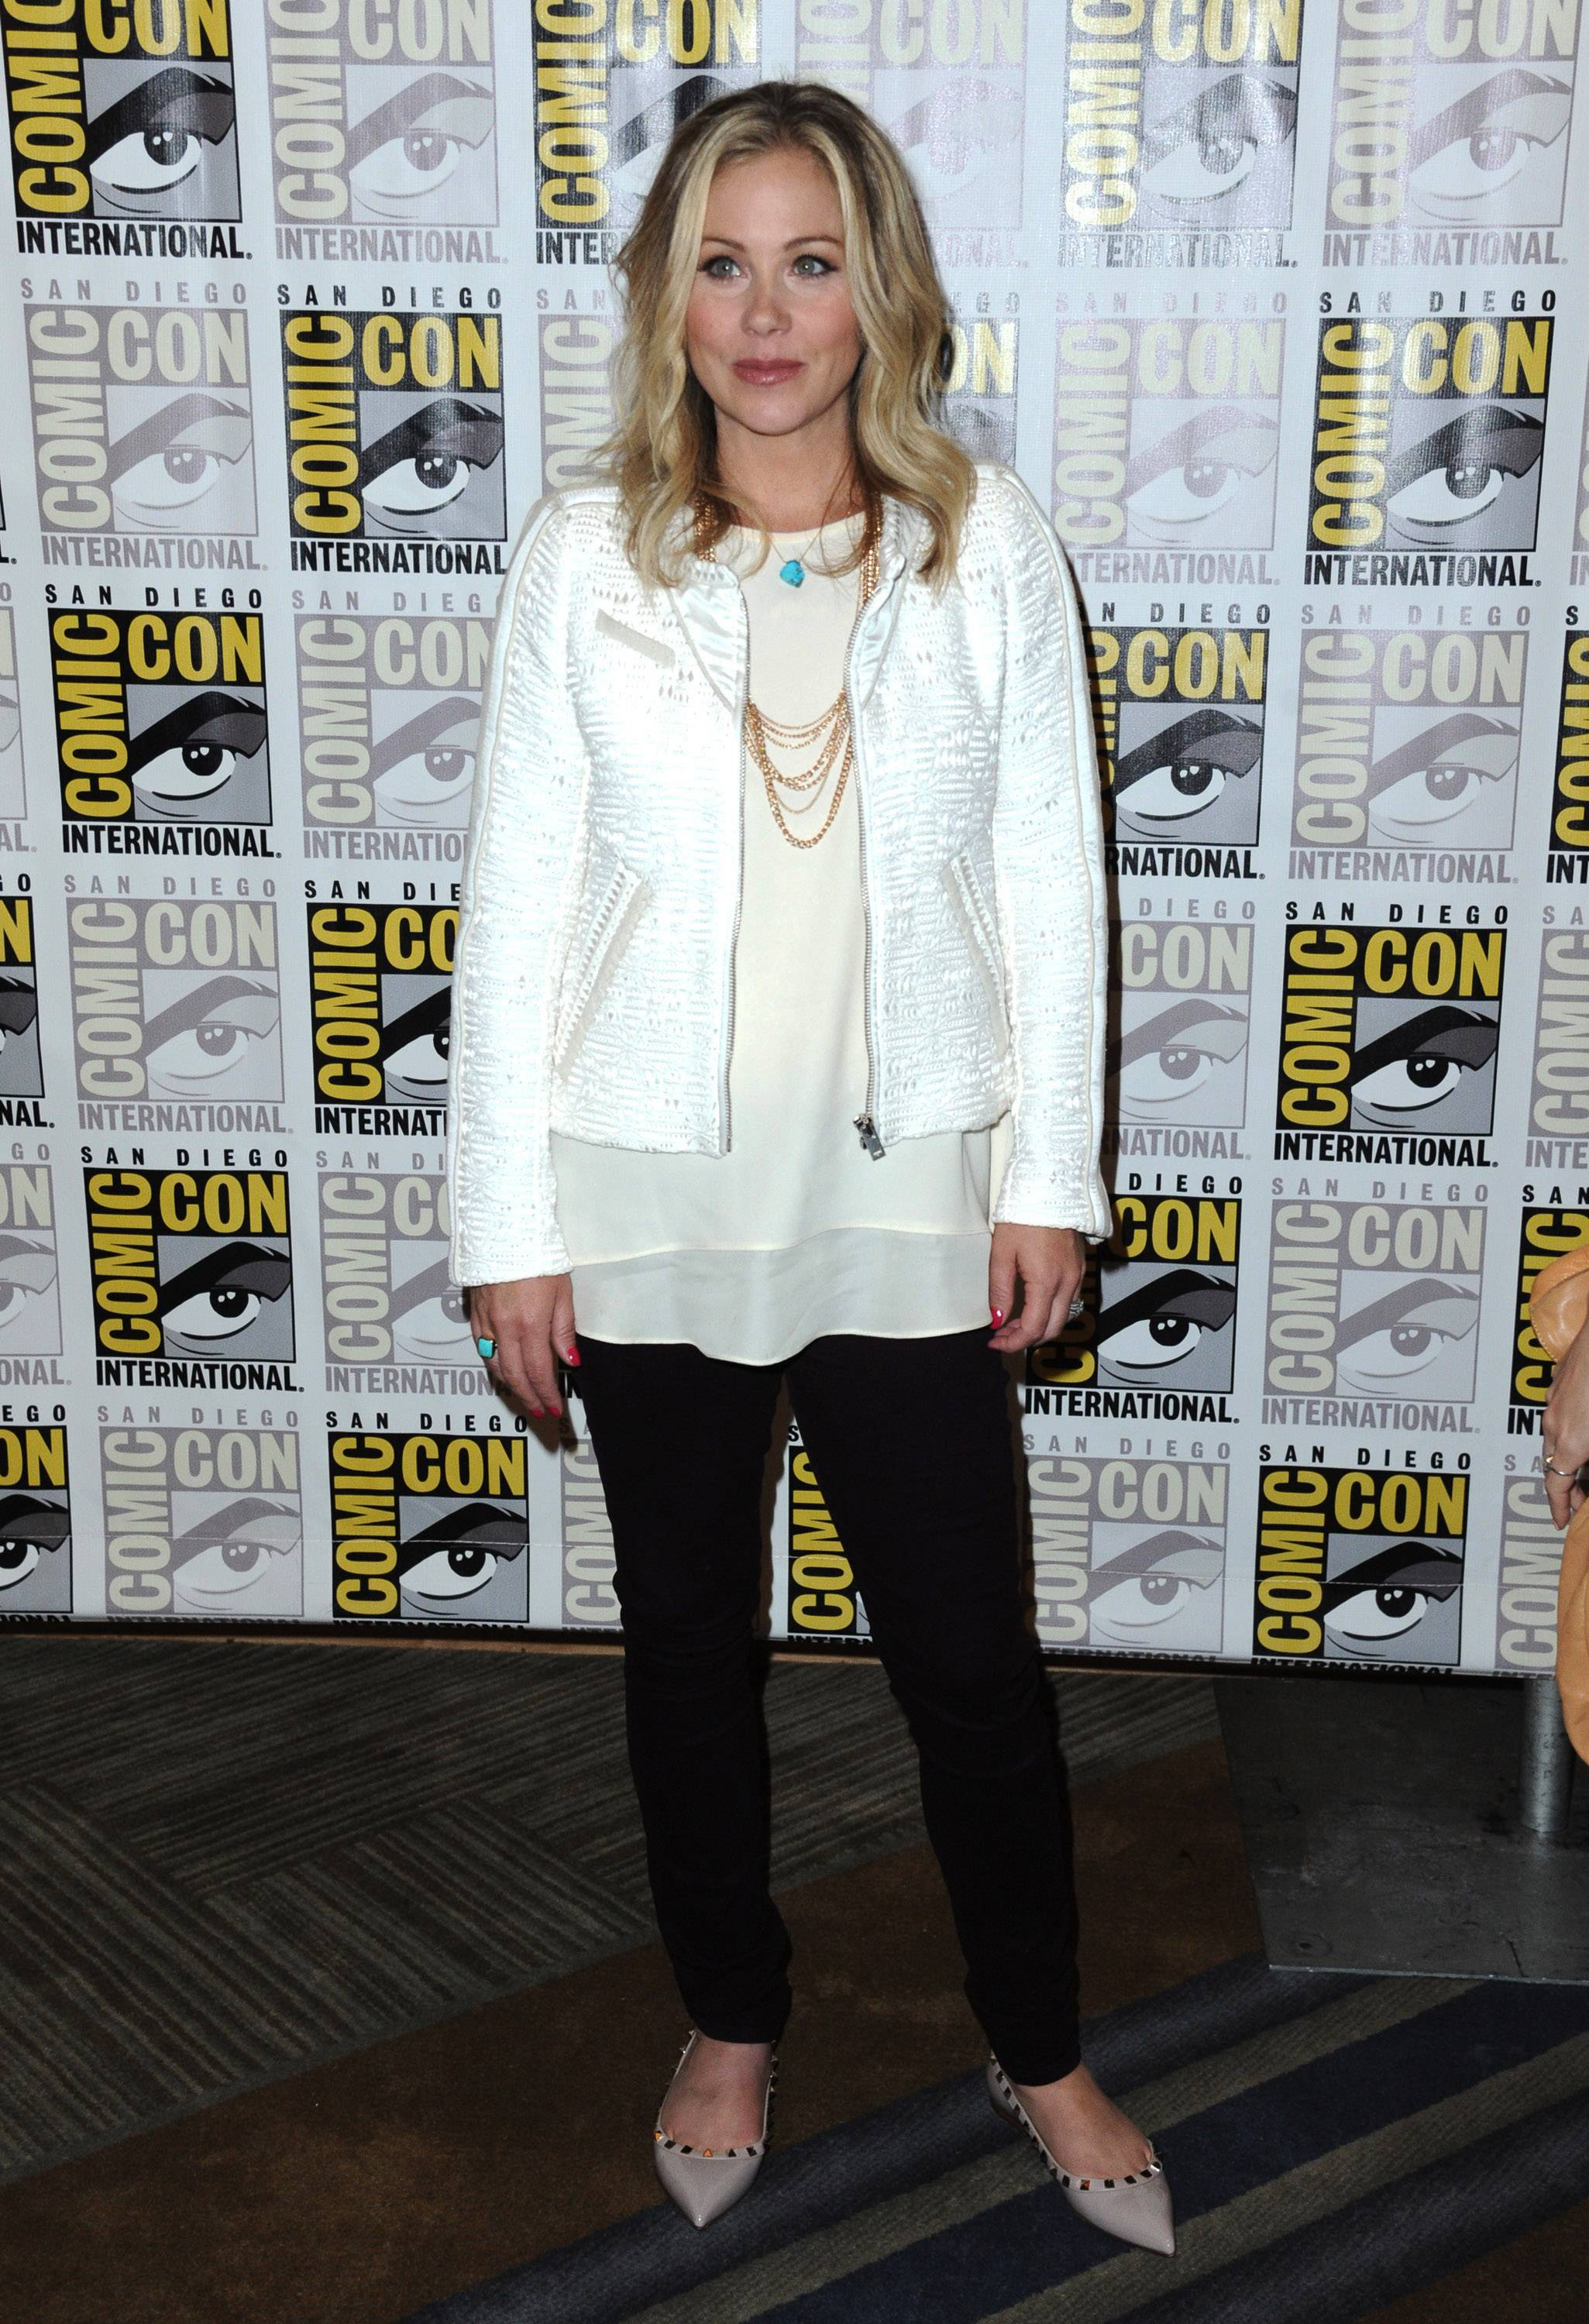 Christina Applegate attends 20th Century Fox press line on Day 2 of Comic-Con International on Friday.